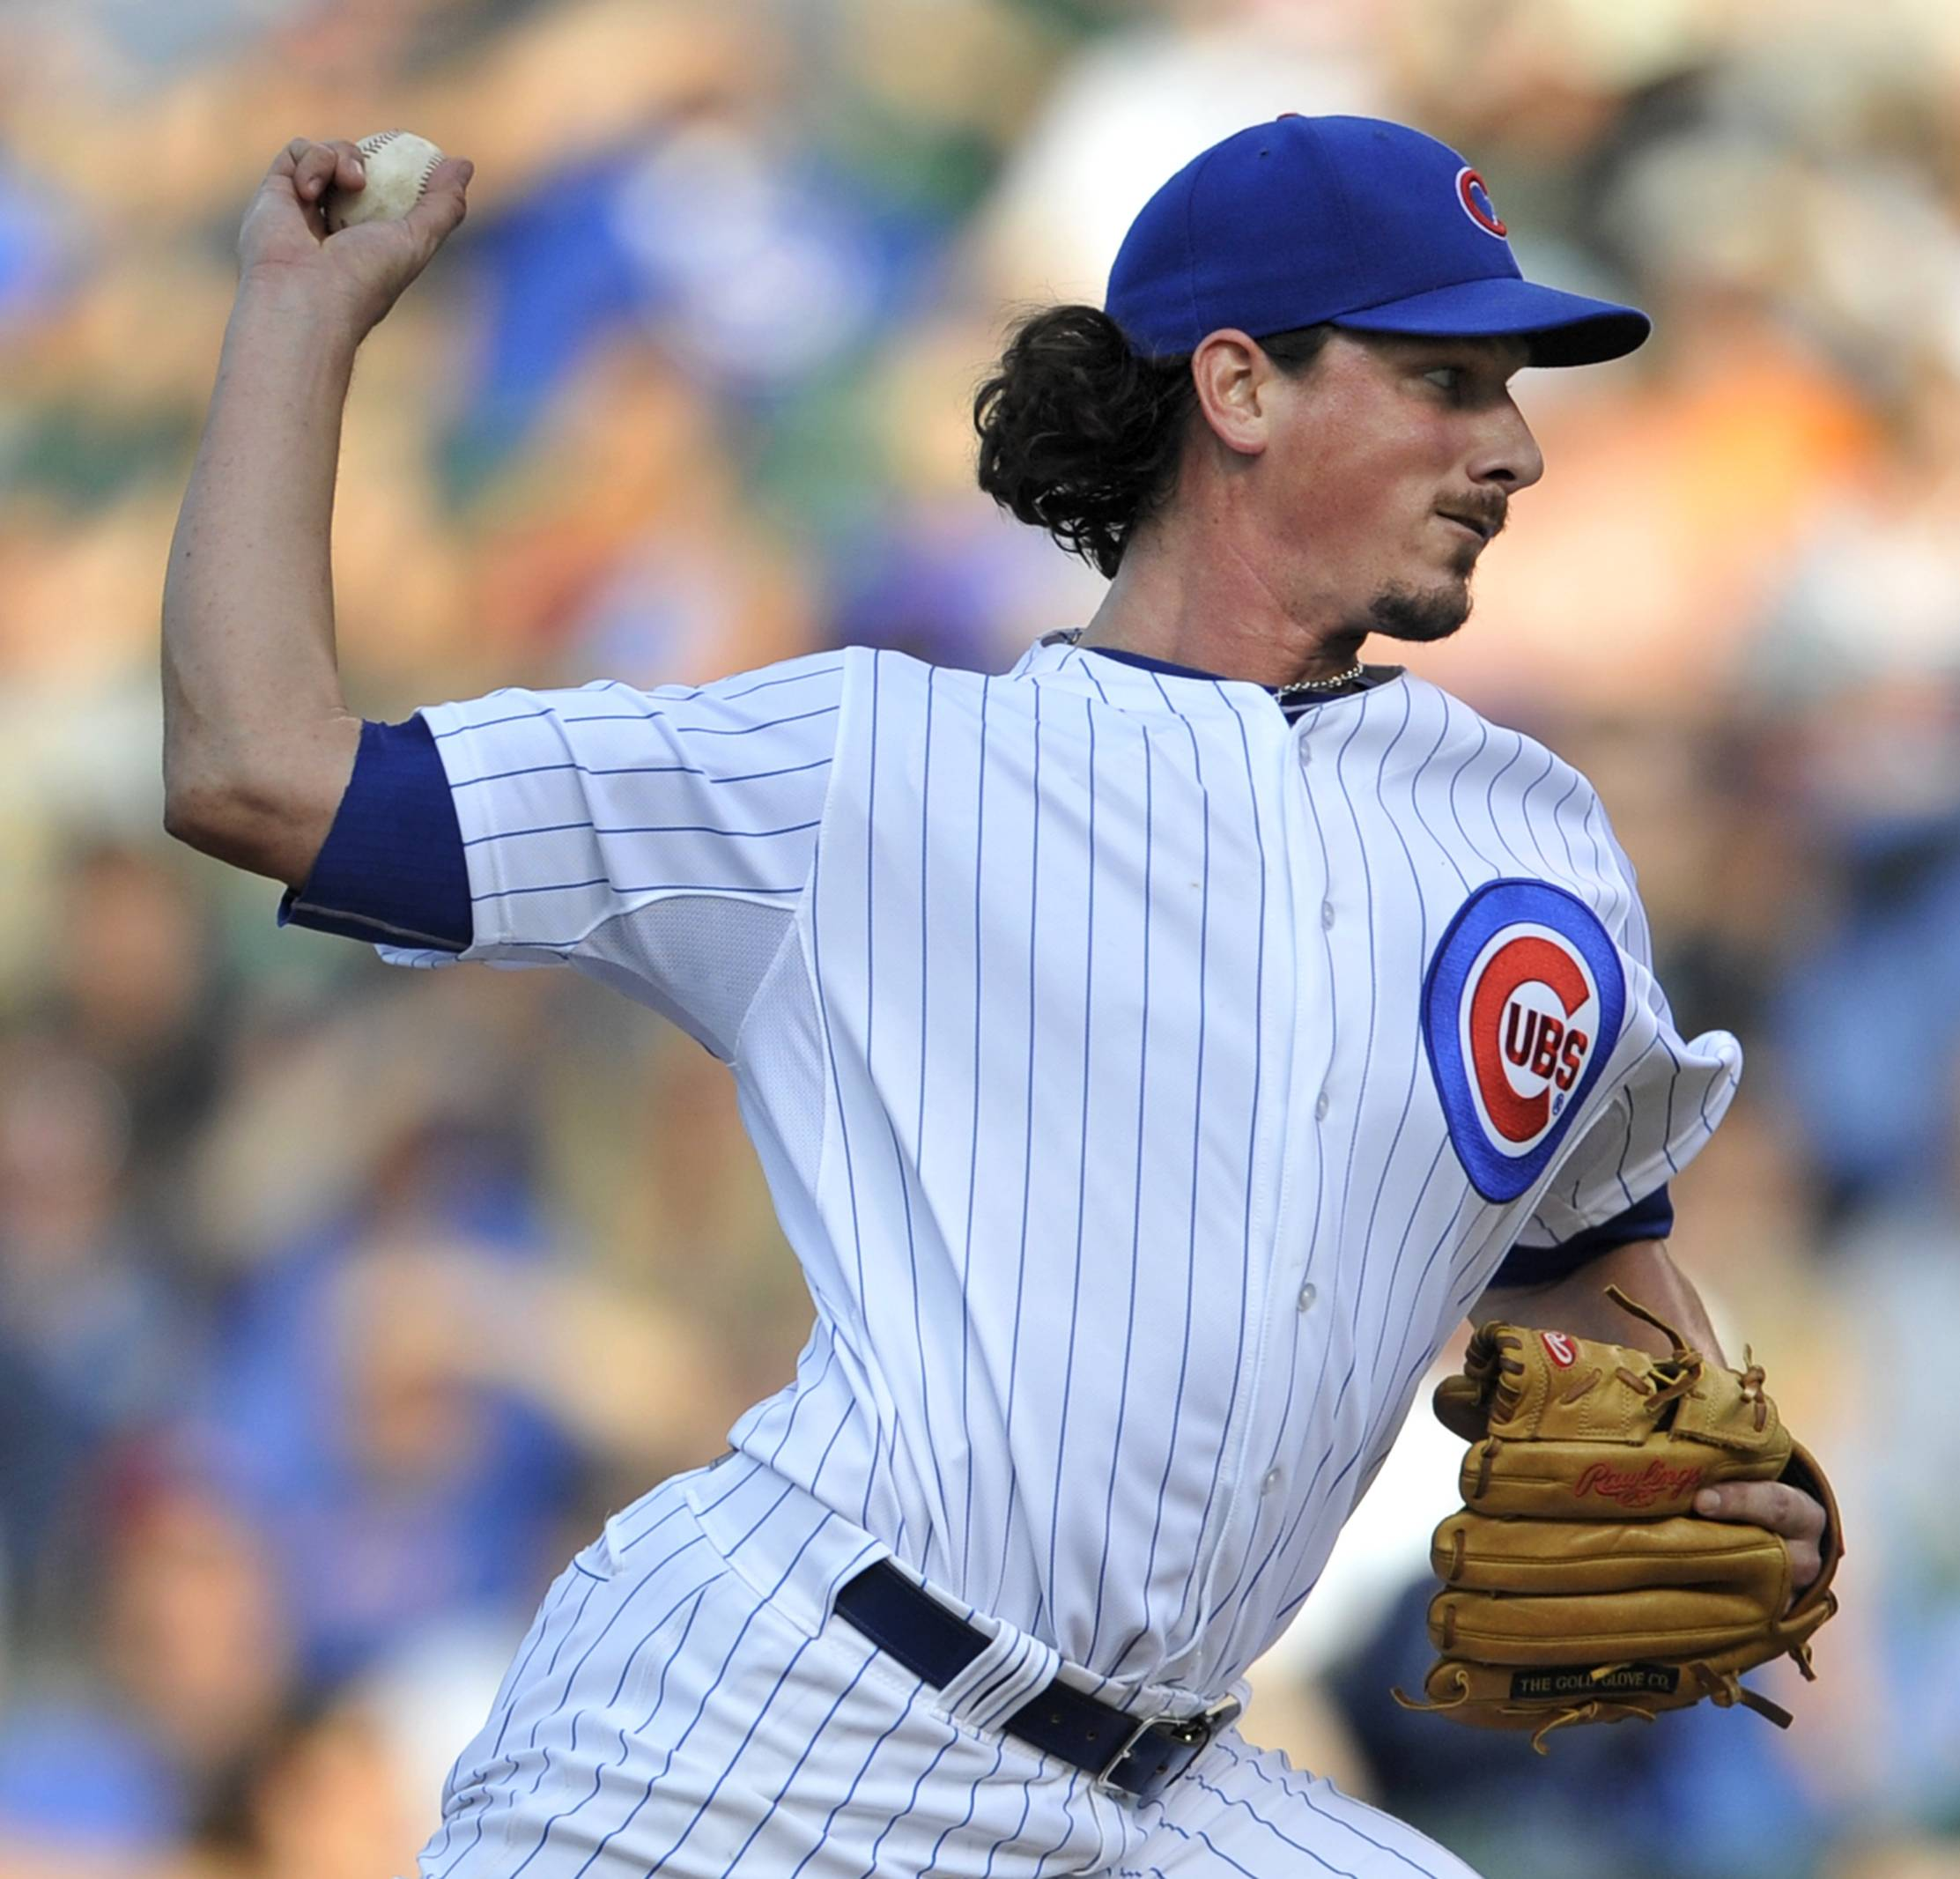 Jeff Samardzija delivers a pitch during the first inning of the second game of a day-night doubleheader against the Nationals on Saturday.